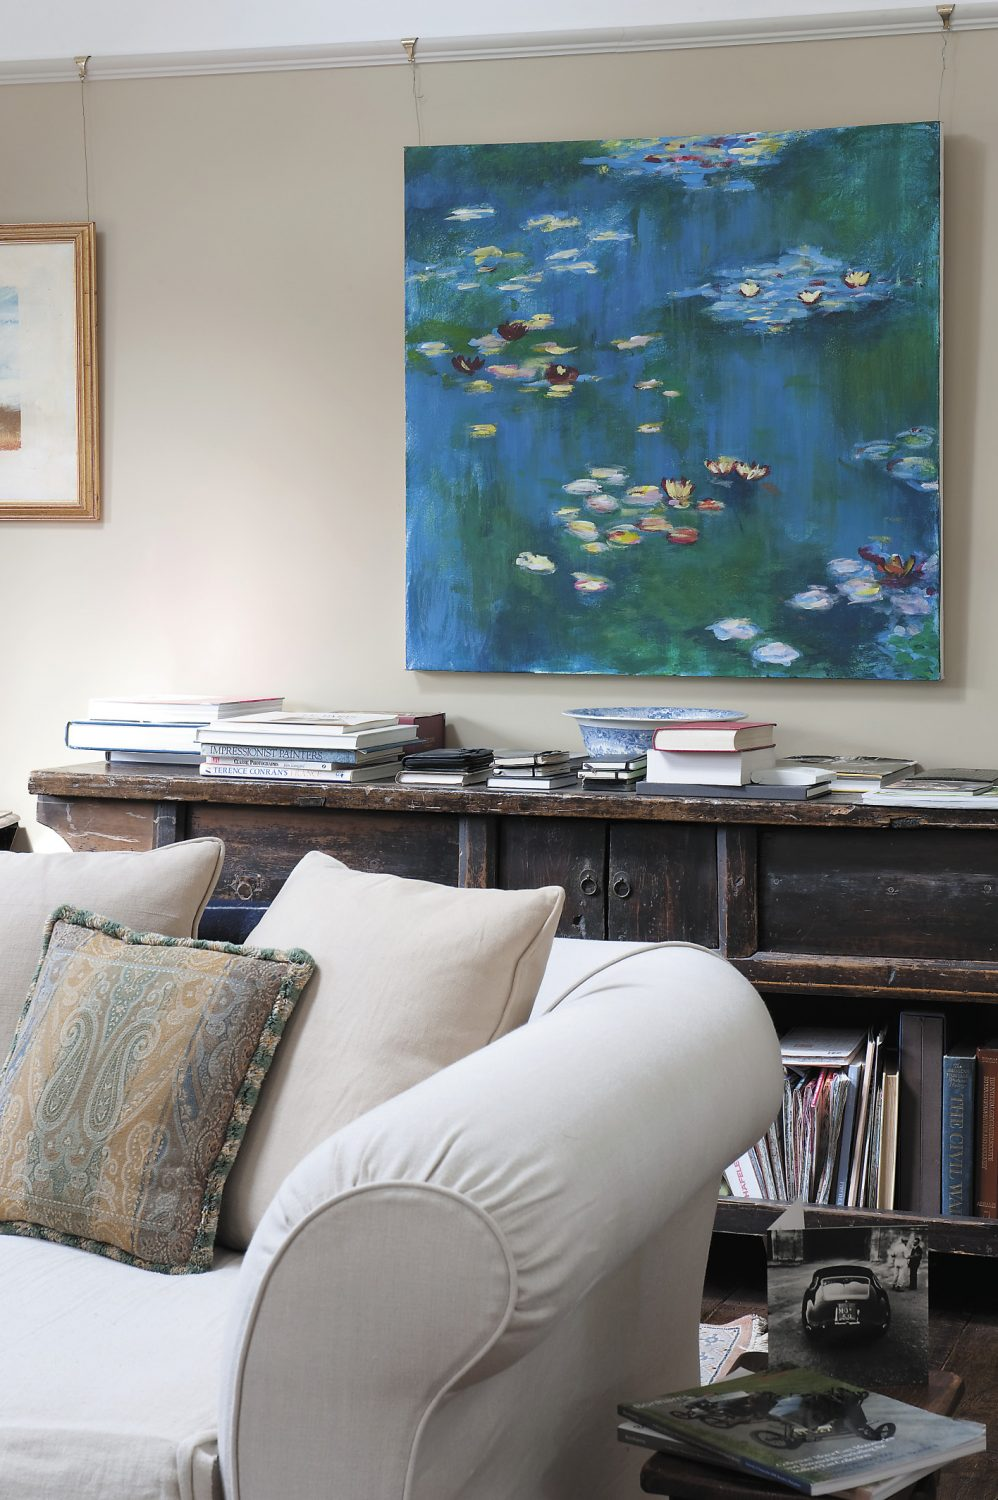 The painting of water lilies was bought from a friend of Mary's daughter who had completed it for her art A Level